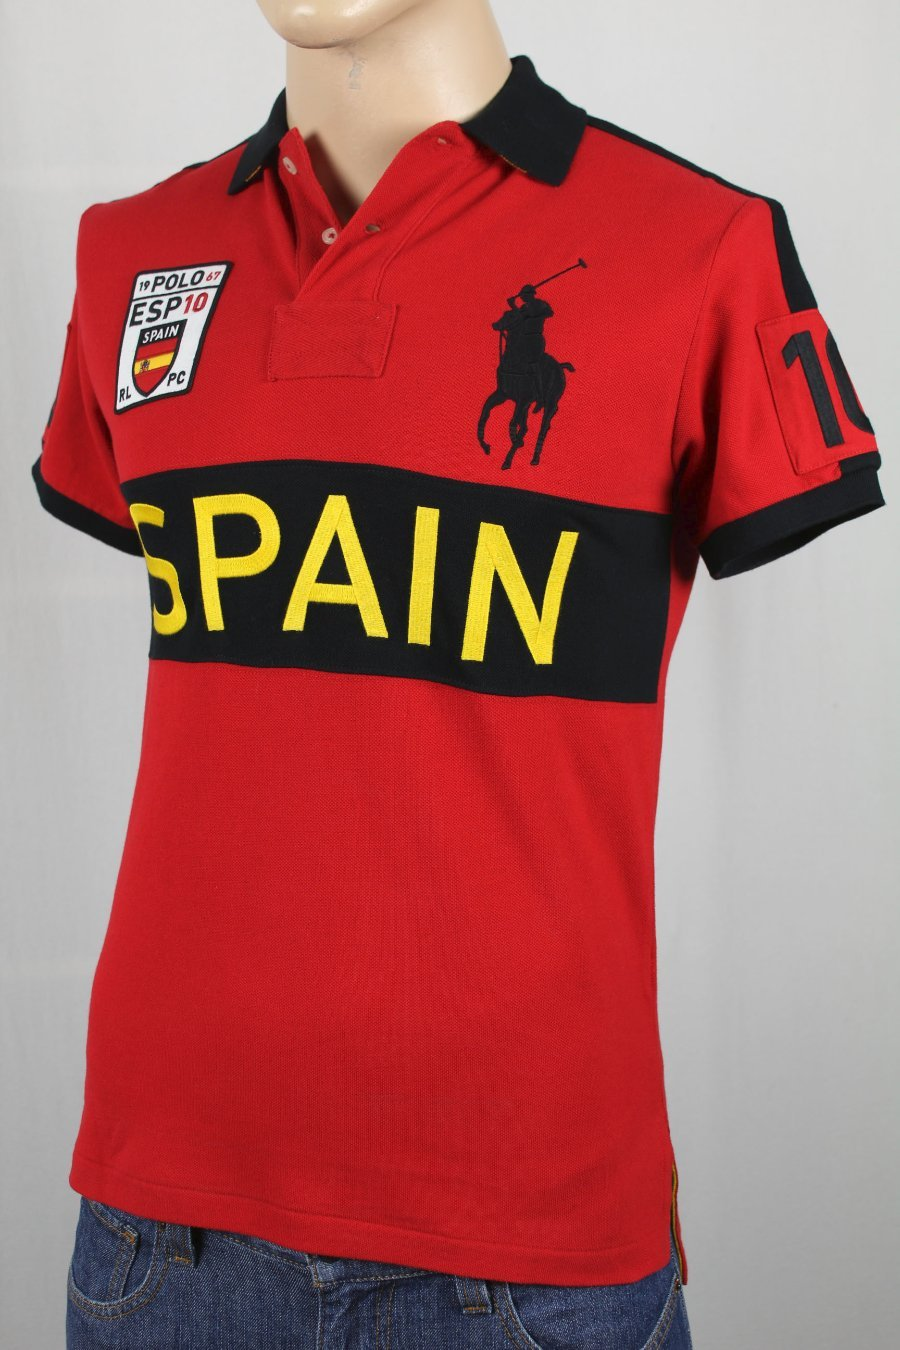 076d5f4af Details about Ralph Lauren Red Custom Fit Spain Big Pony Polo NWT